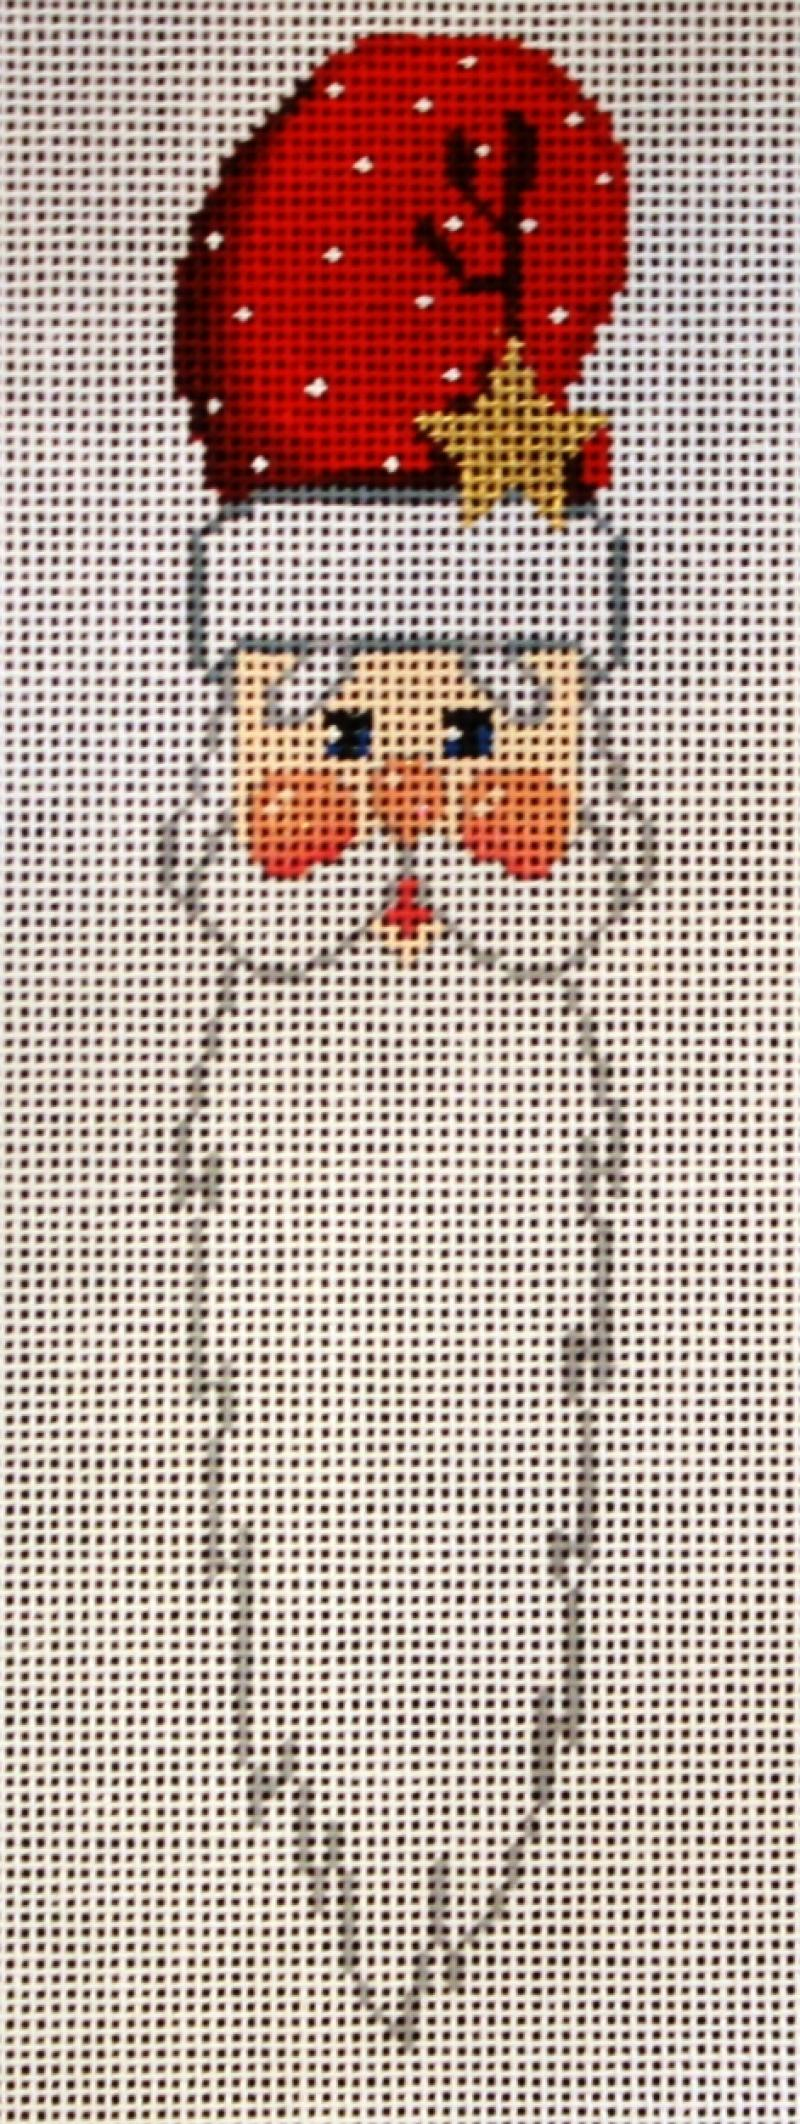 SRCD0420 Whiskers 7.5 long Santa Face Red Star